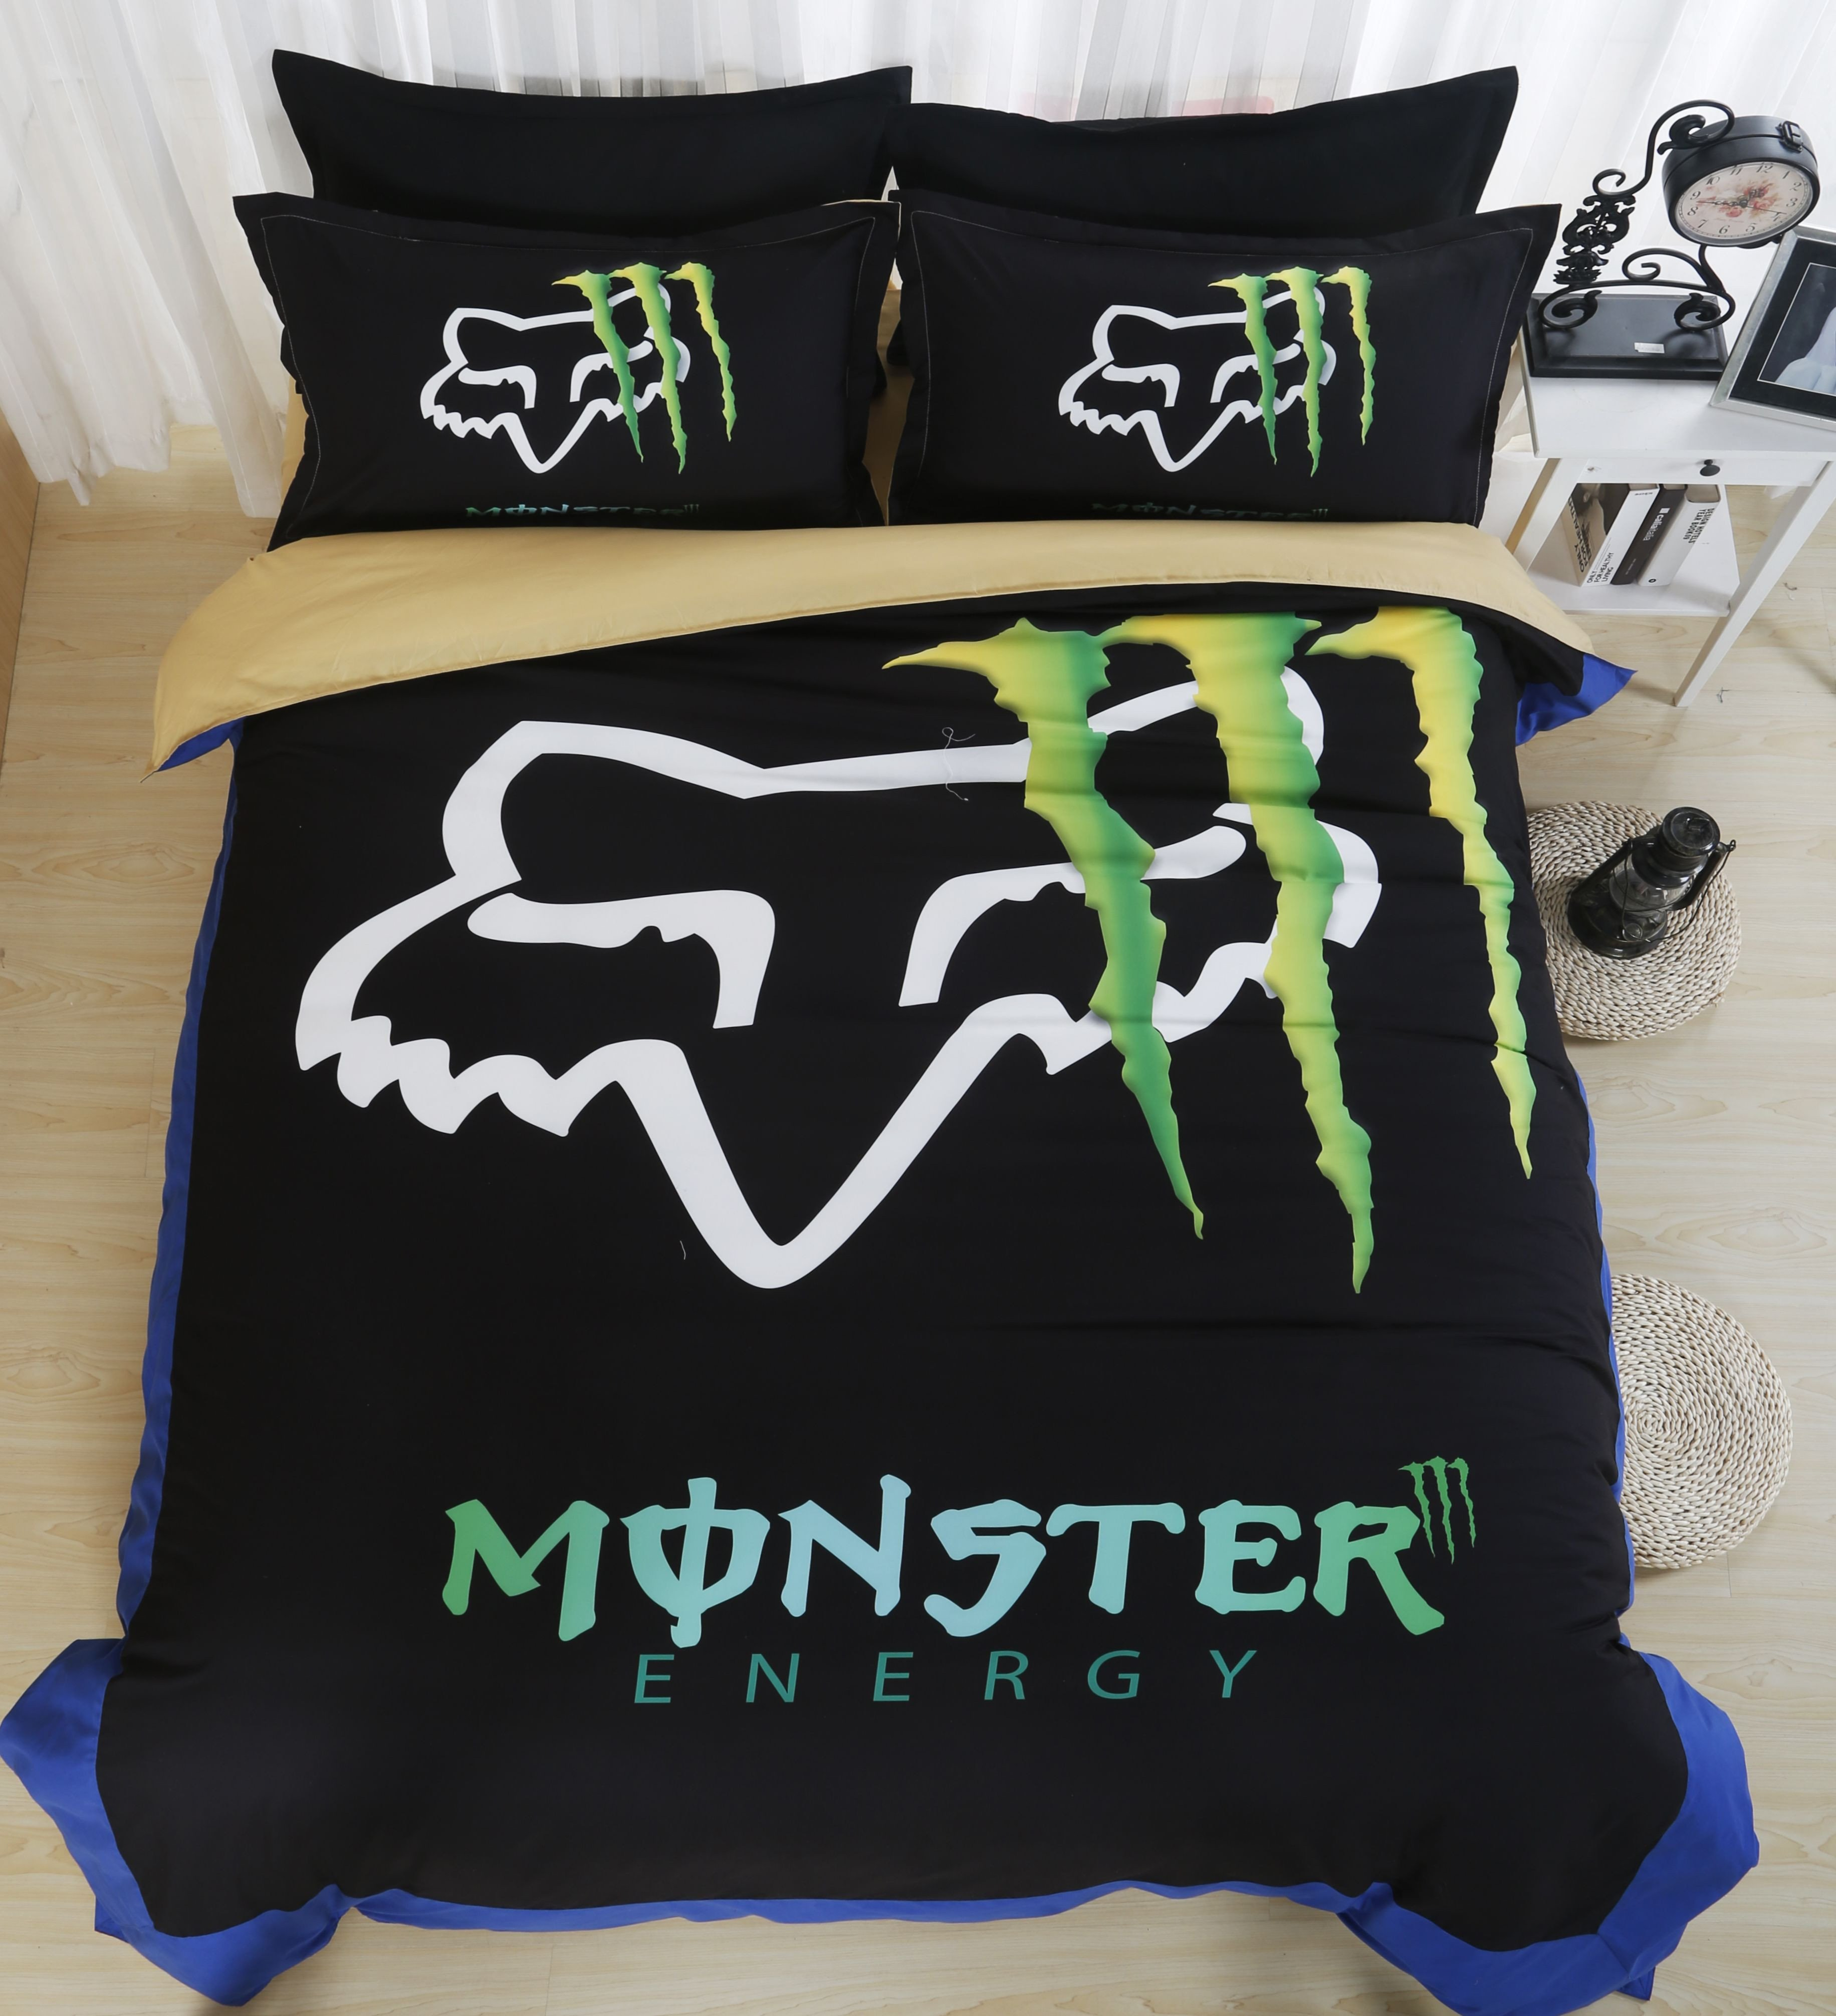 Dirt Bike Bedroom Set Awesome Monster Energy Duvet Covers